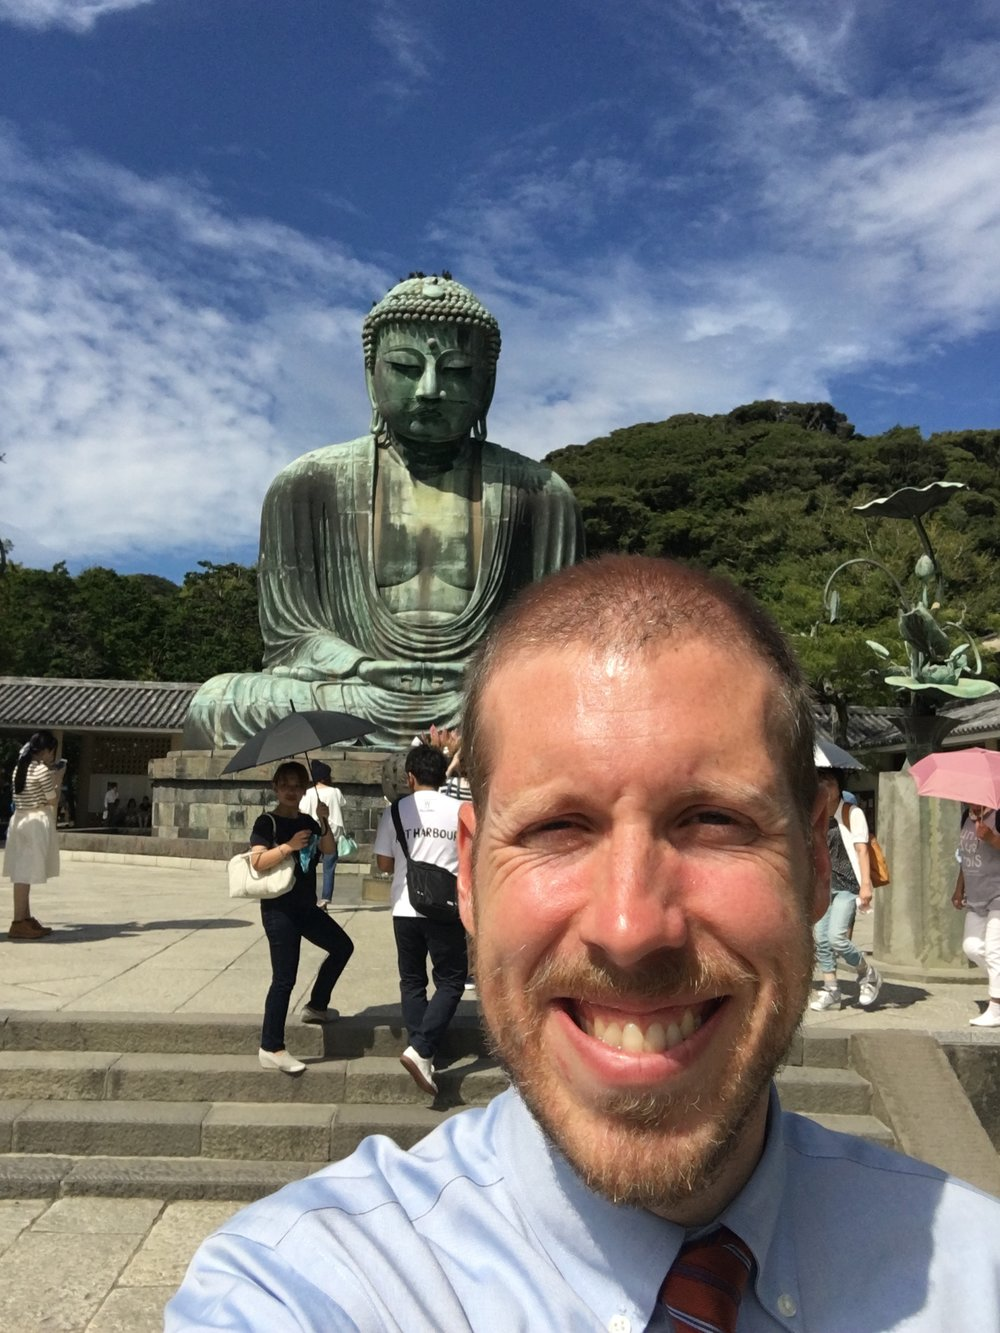 Me in front of the Kamakura Giant Budda (大仏). It is about forty feet tall.